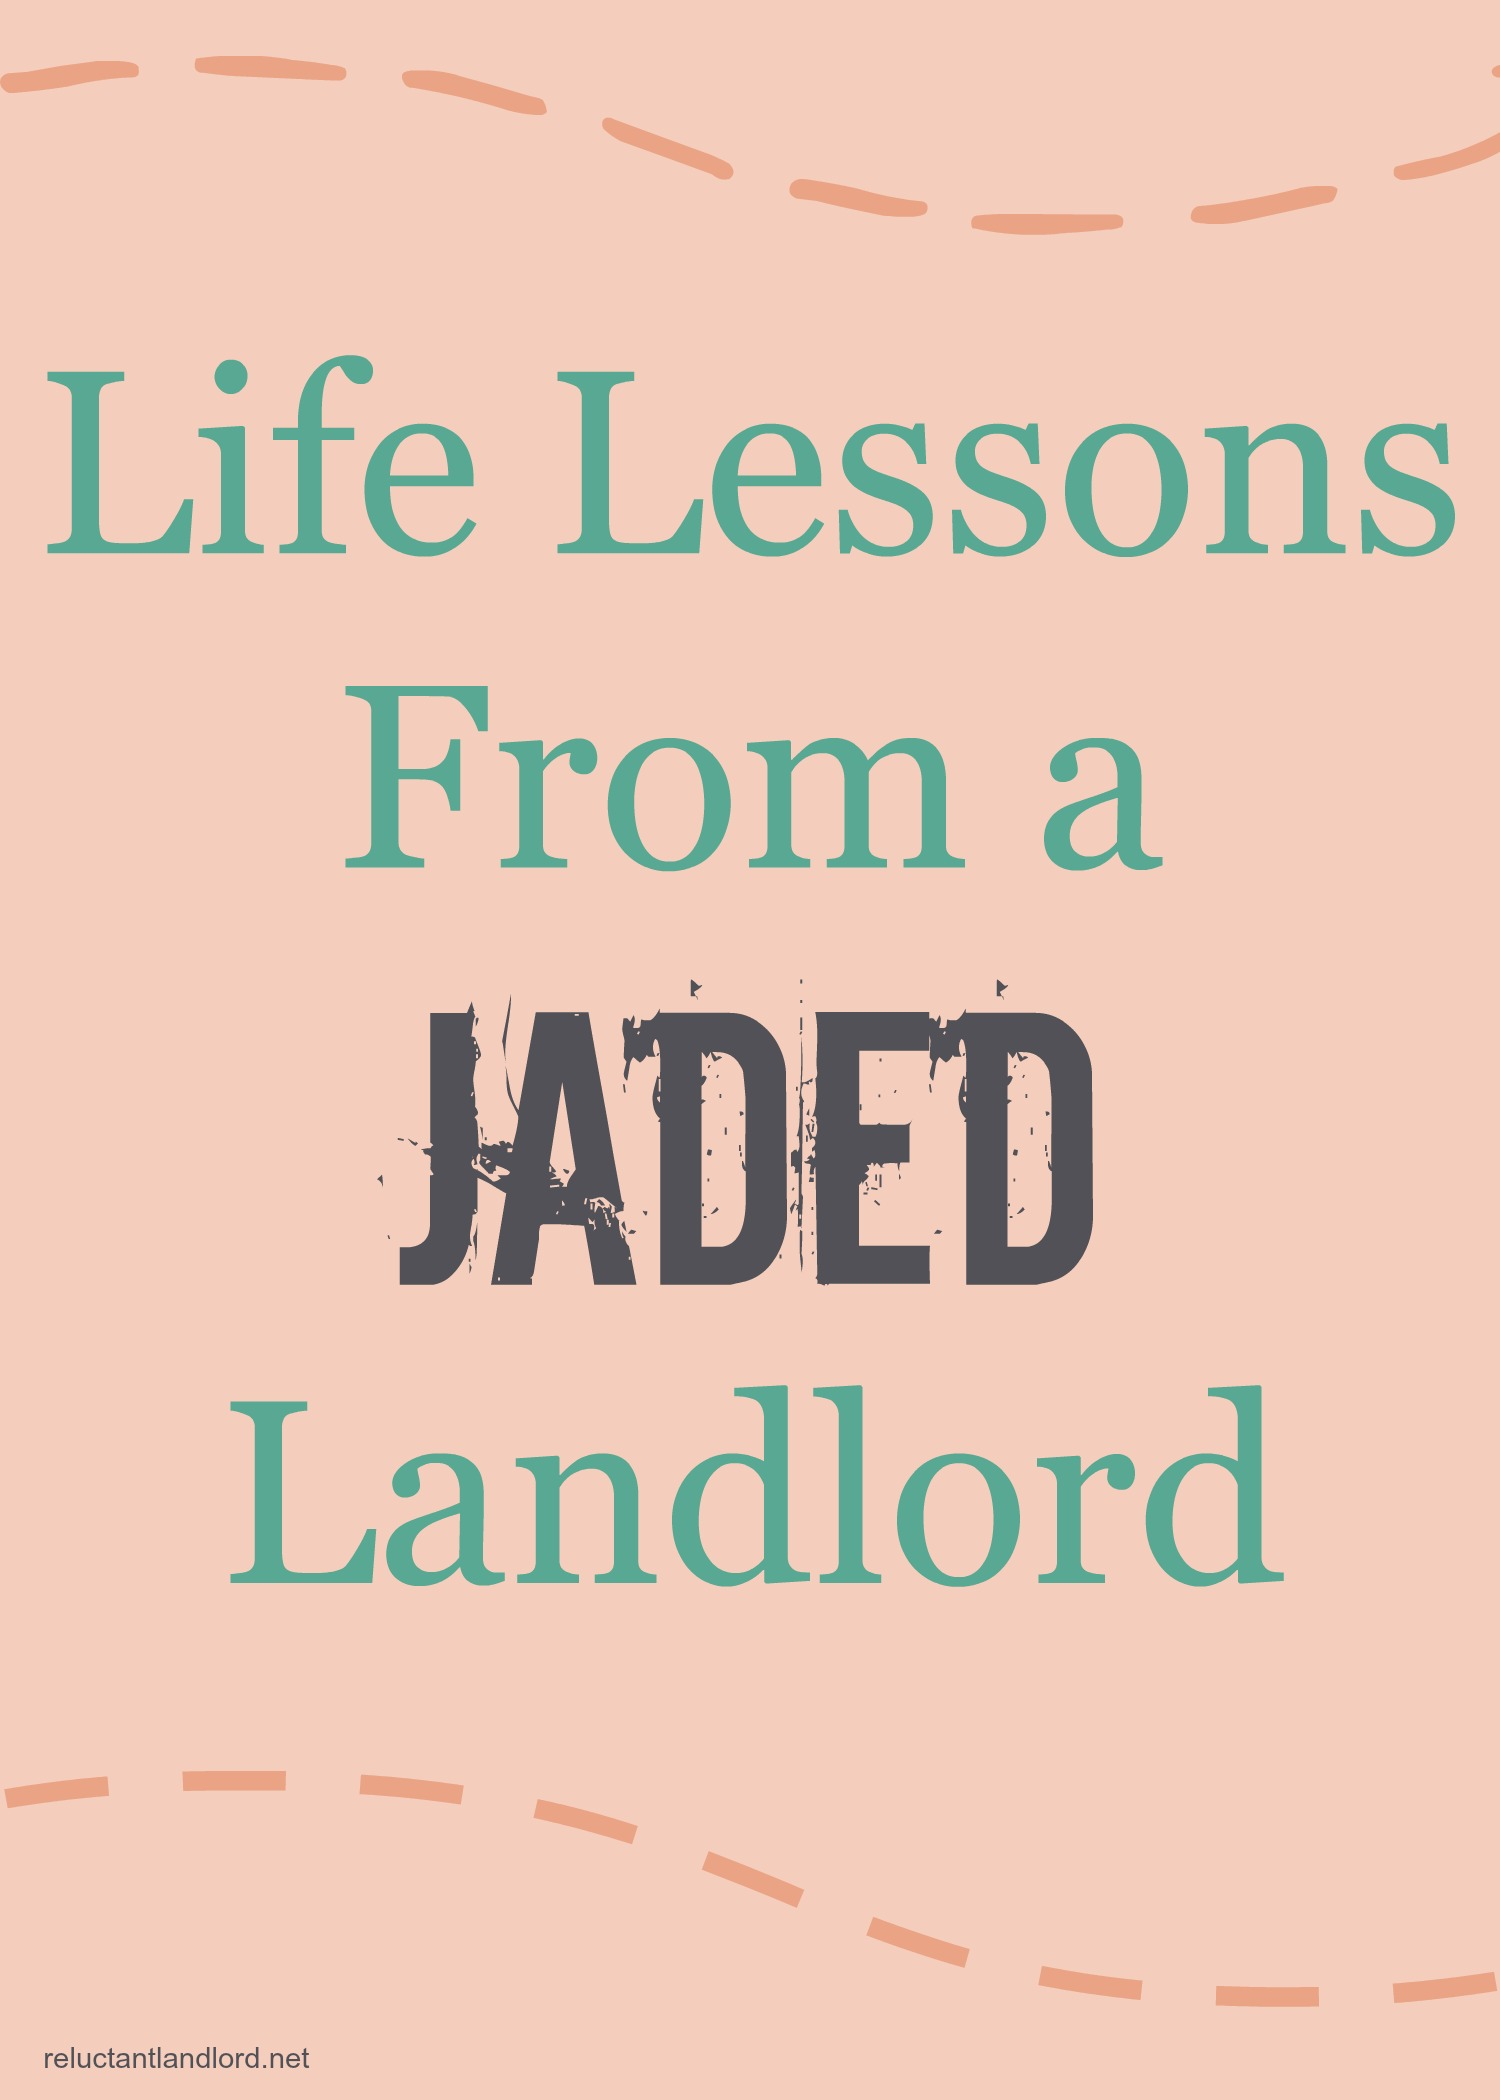 Life Lessons From a Jaded Landlord